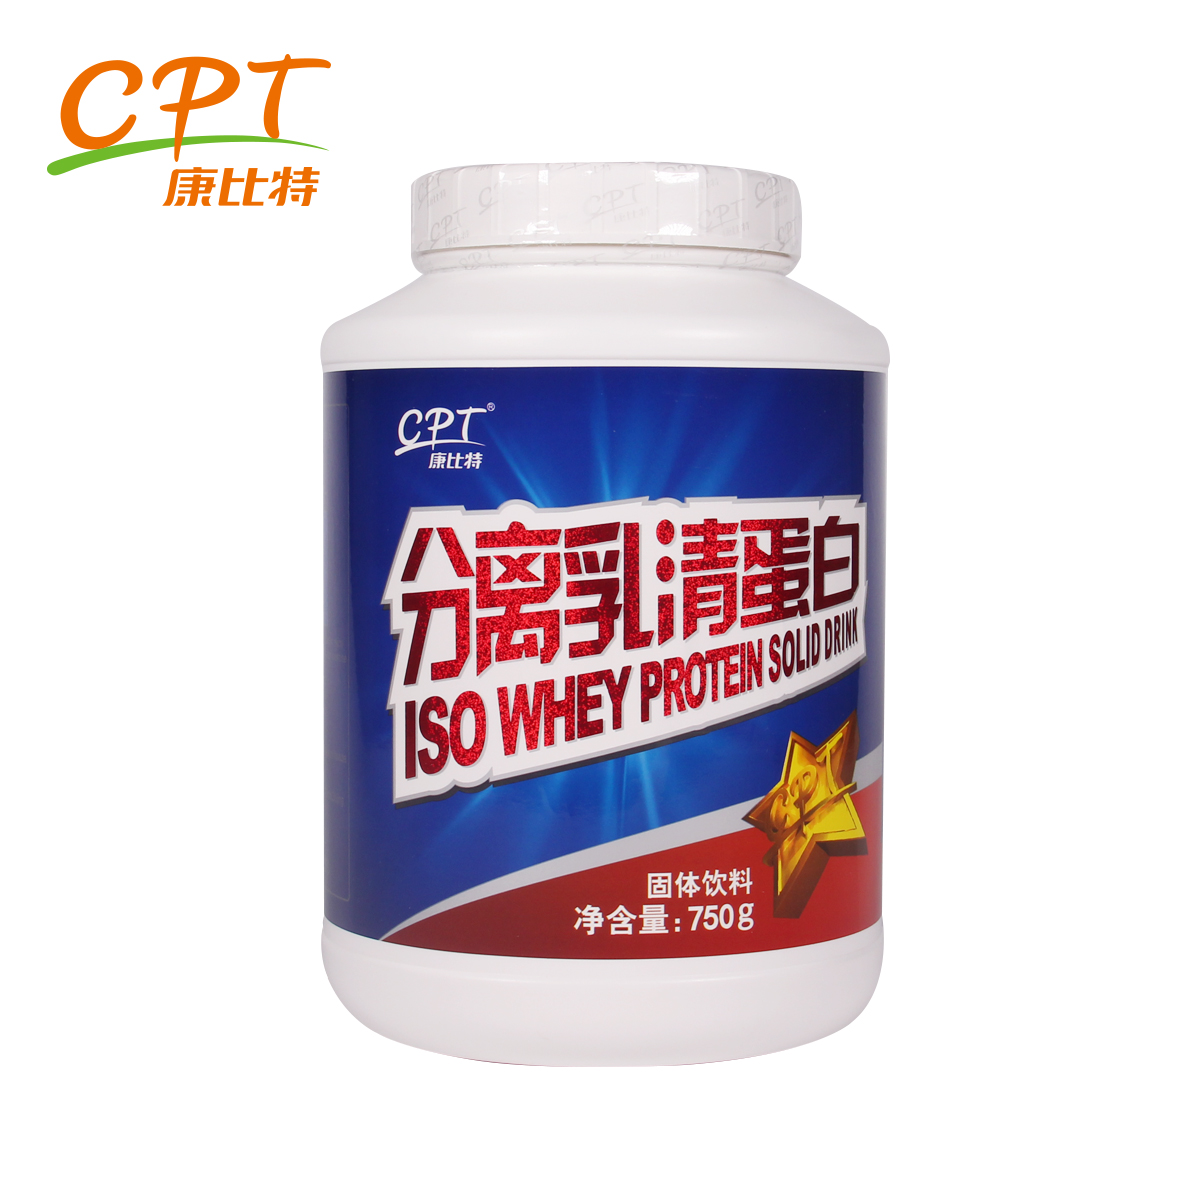 Kang bit whey protein isolate protein powder protein powder fitness by jianjining powder whey protein powder 750g